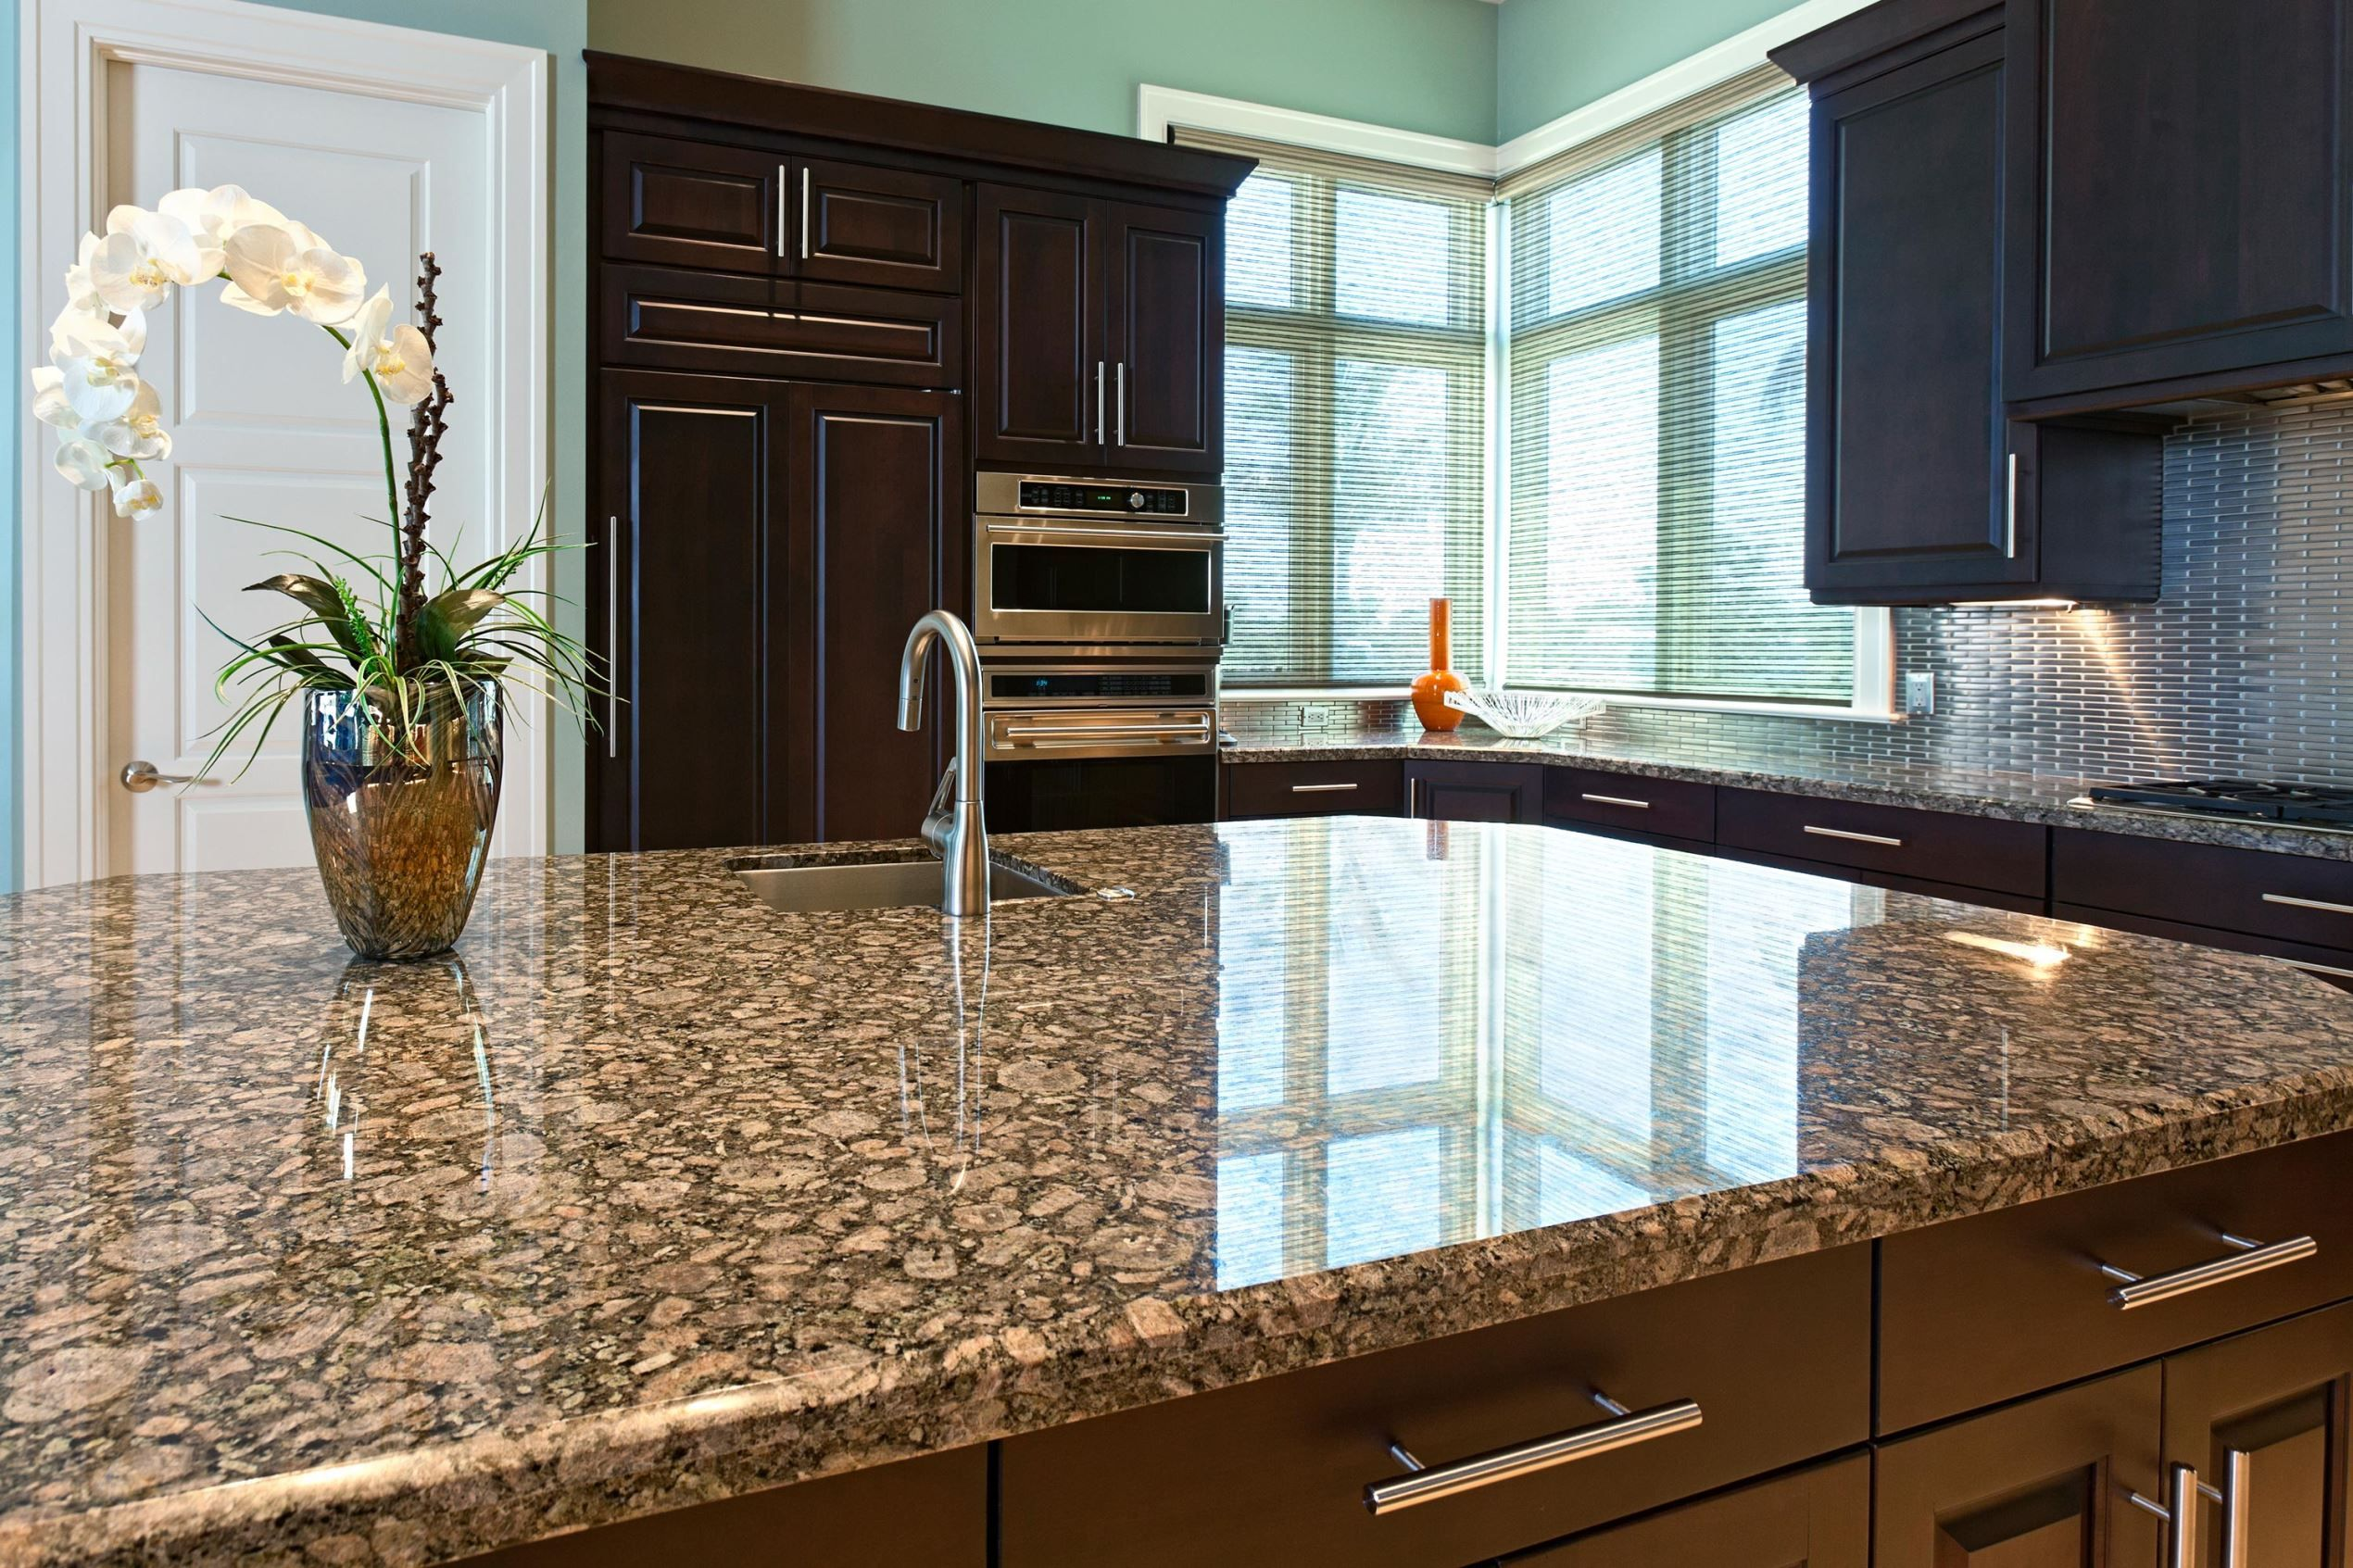 Granite Countertop To Thoroughly Clean A Granite Countertop, Isopropyl  Alcohol Will Do The Trick